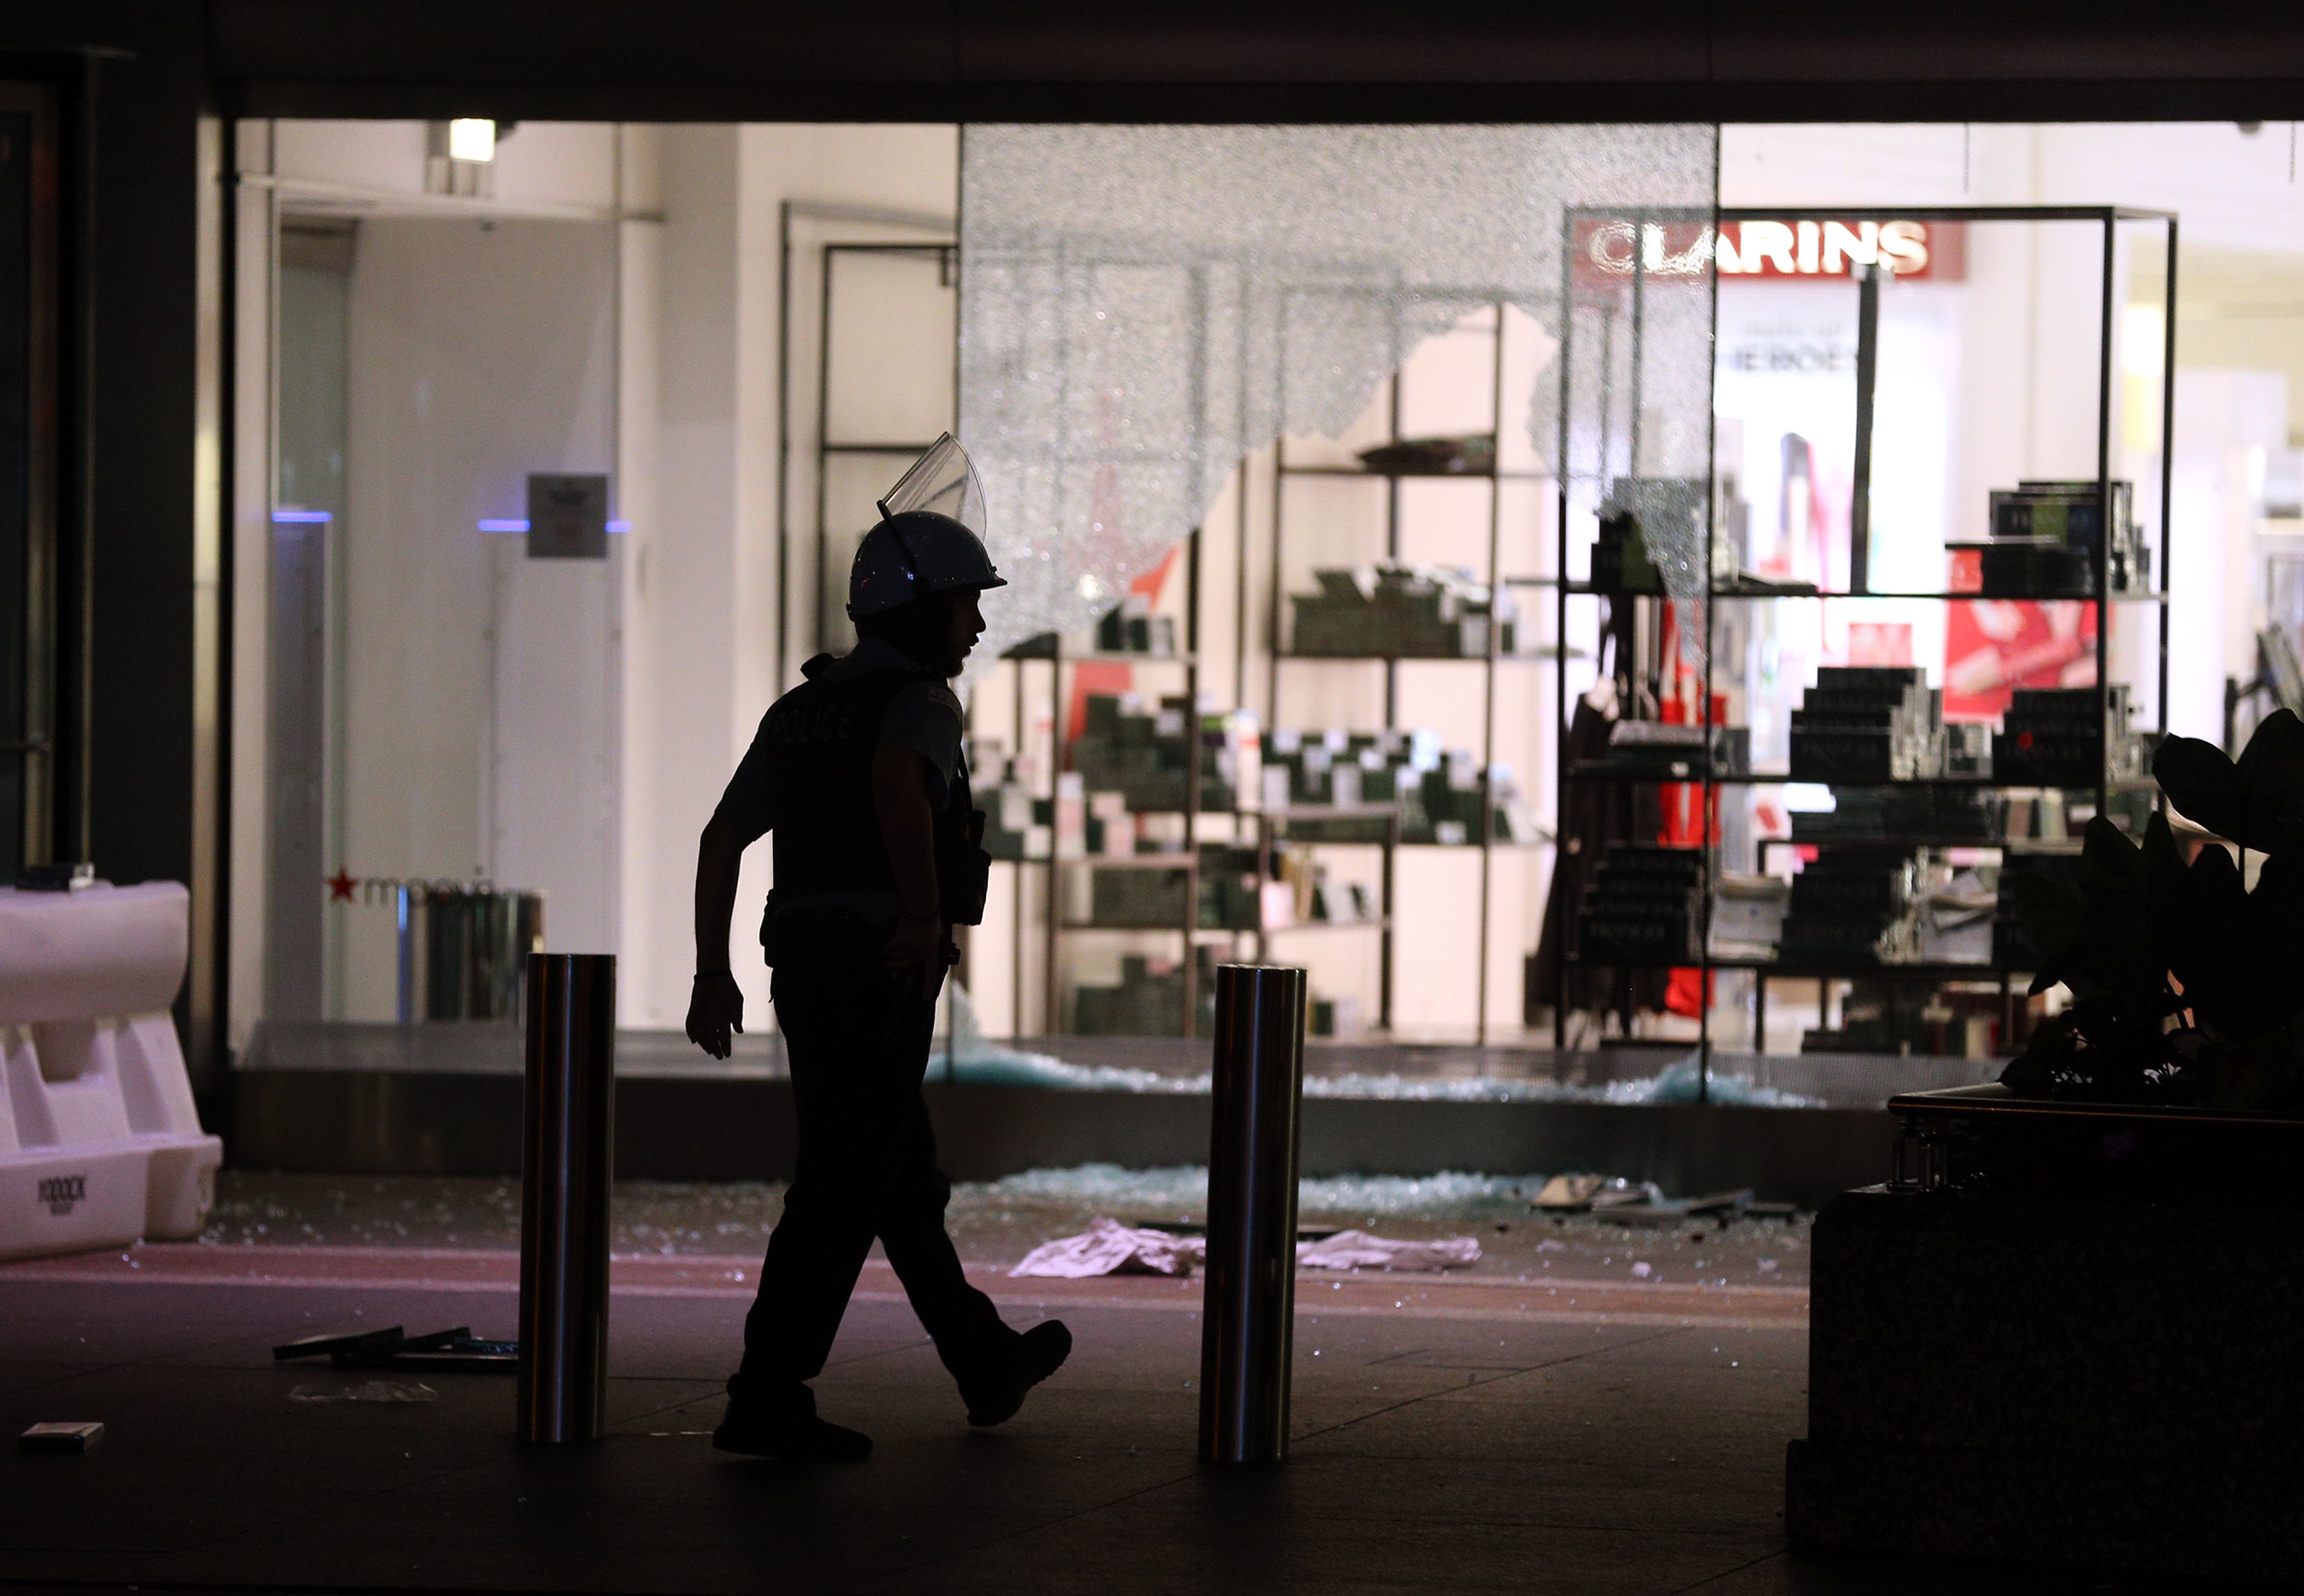 A Chicago Police officer walks past Macy's on North Michigan Avenue in Chicago after the store and others in the area were looted early Monday Aug. 10, 2020.